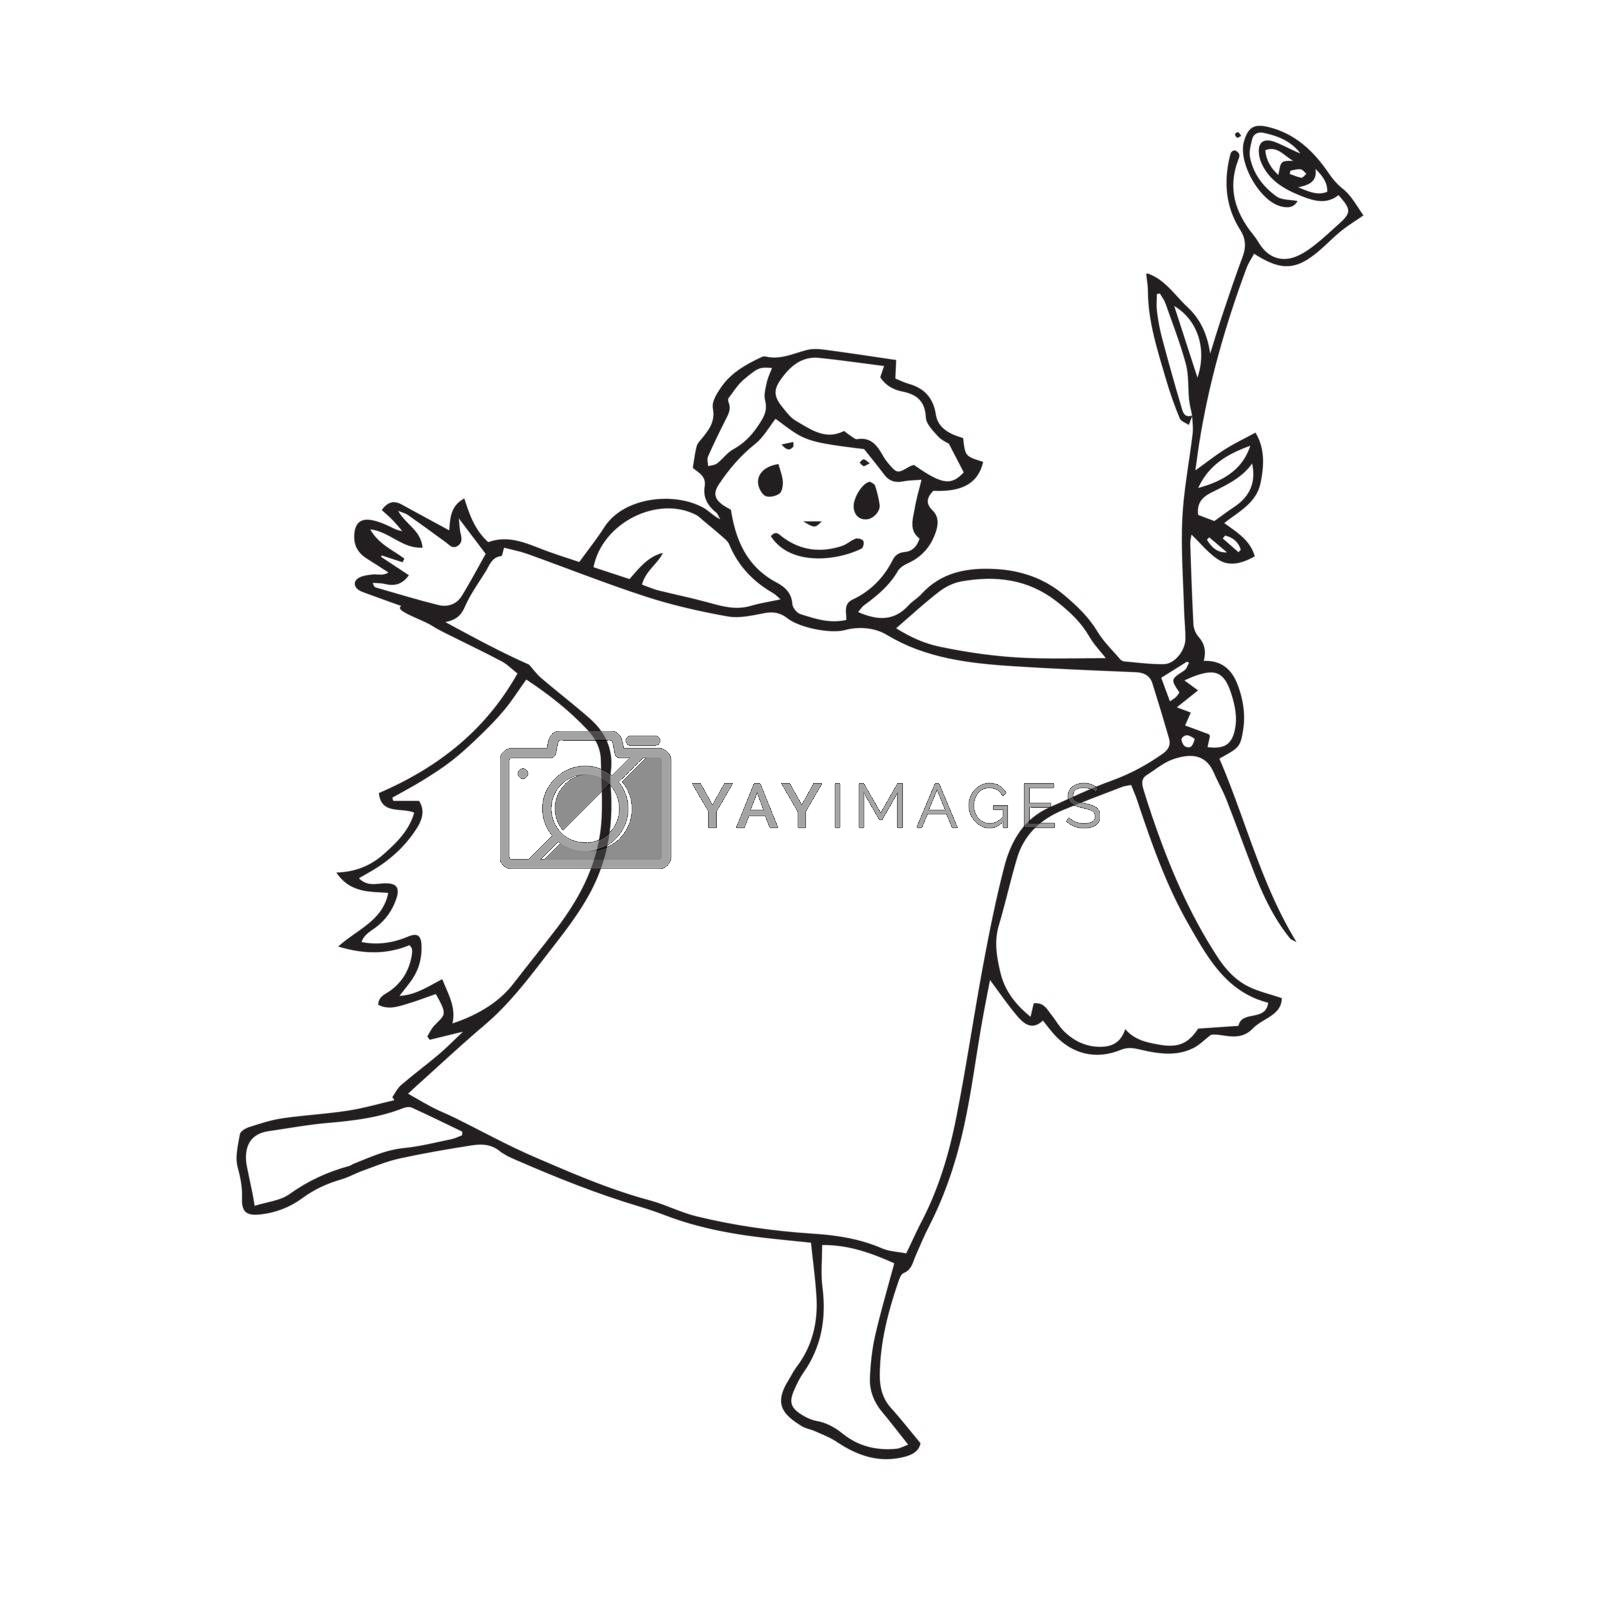 Angel cute little man flower big rose. Sketch hand-drawing contour vector graphics. Illustration for coloring